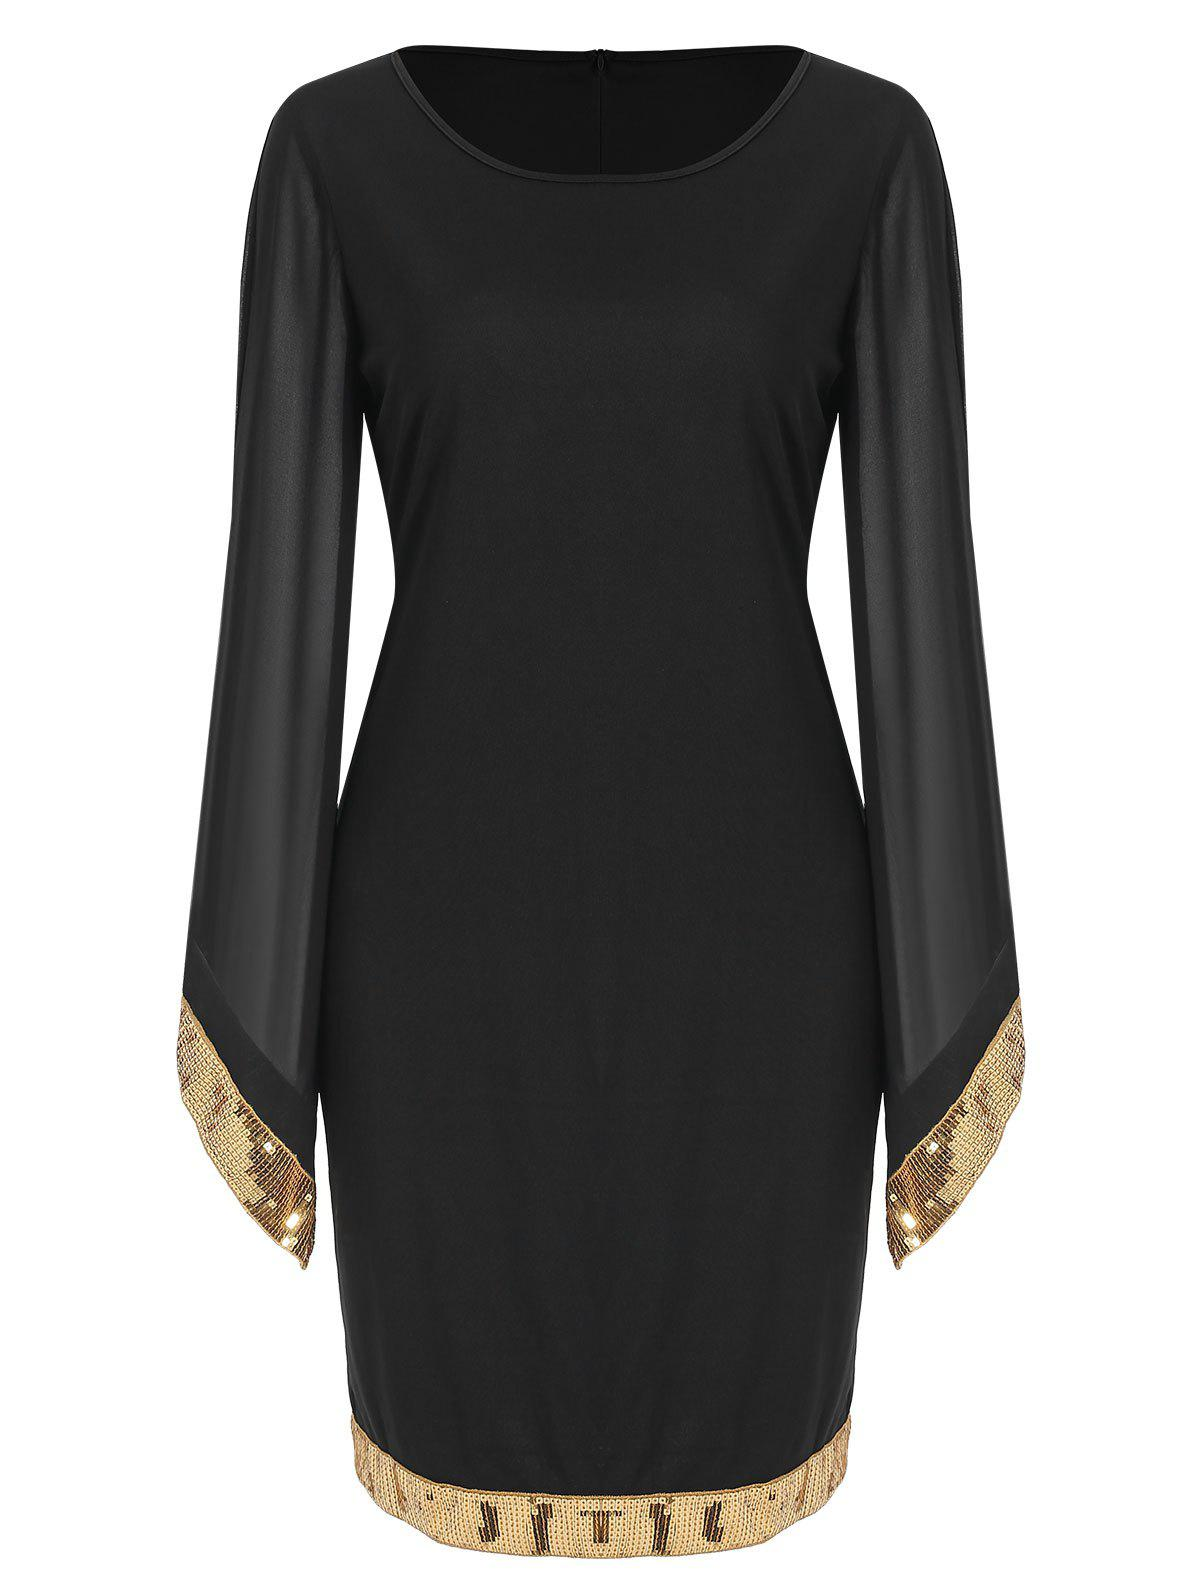 Sequin Panel Long Sleeve Sheath Dress - NIGHT S